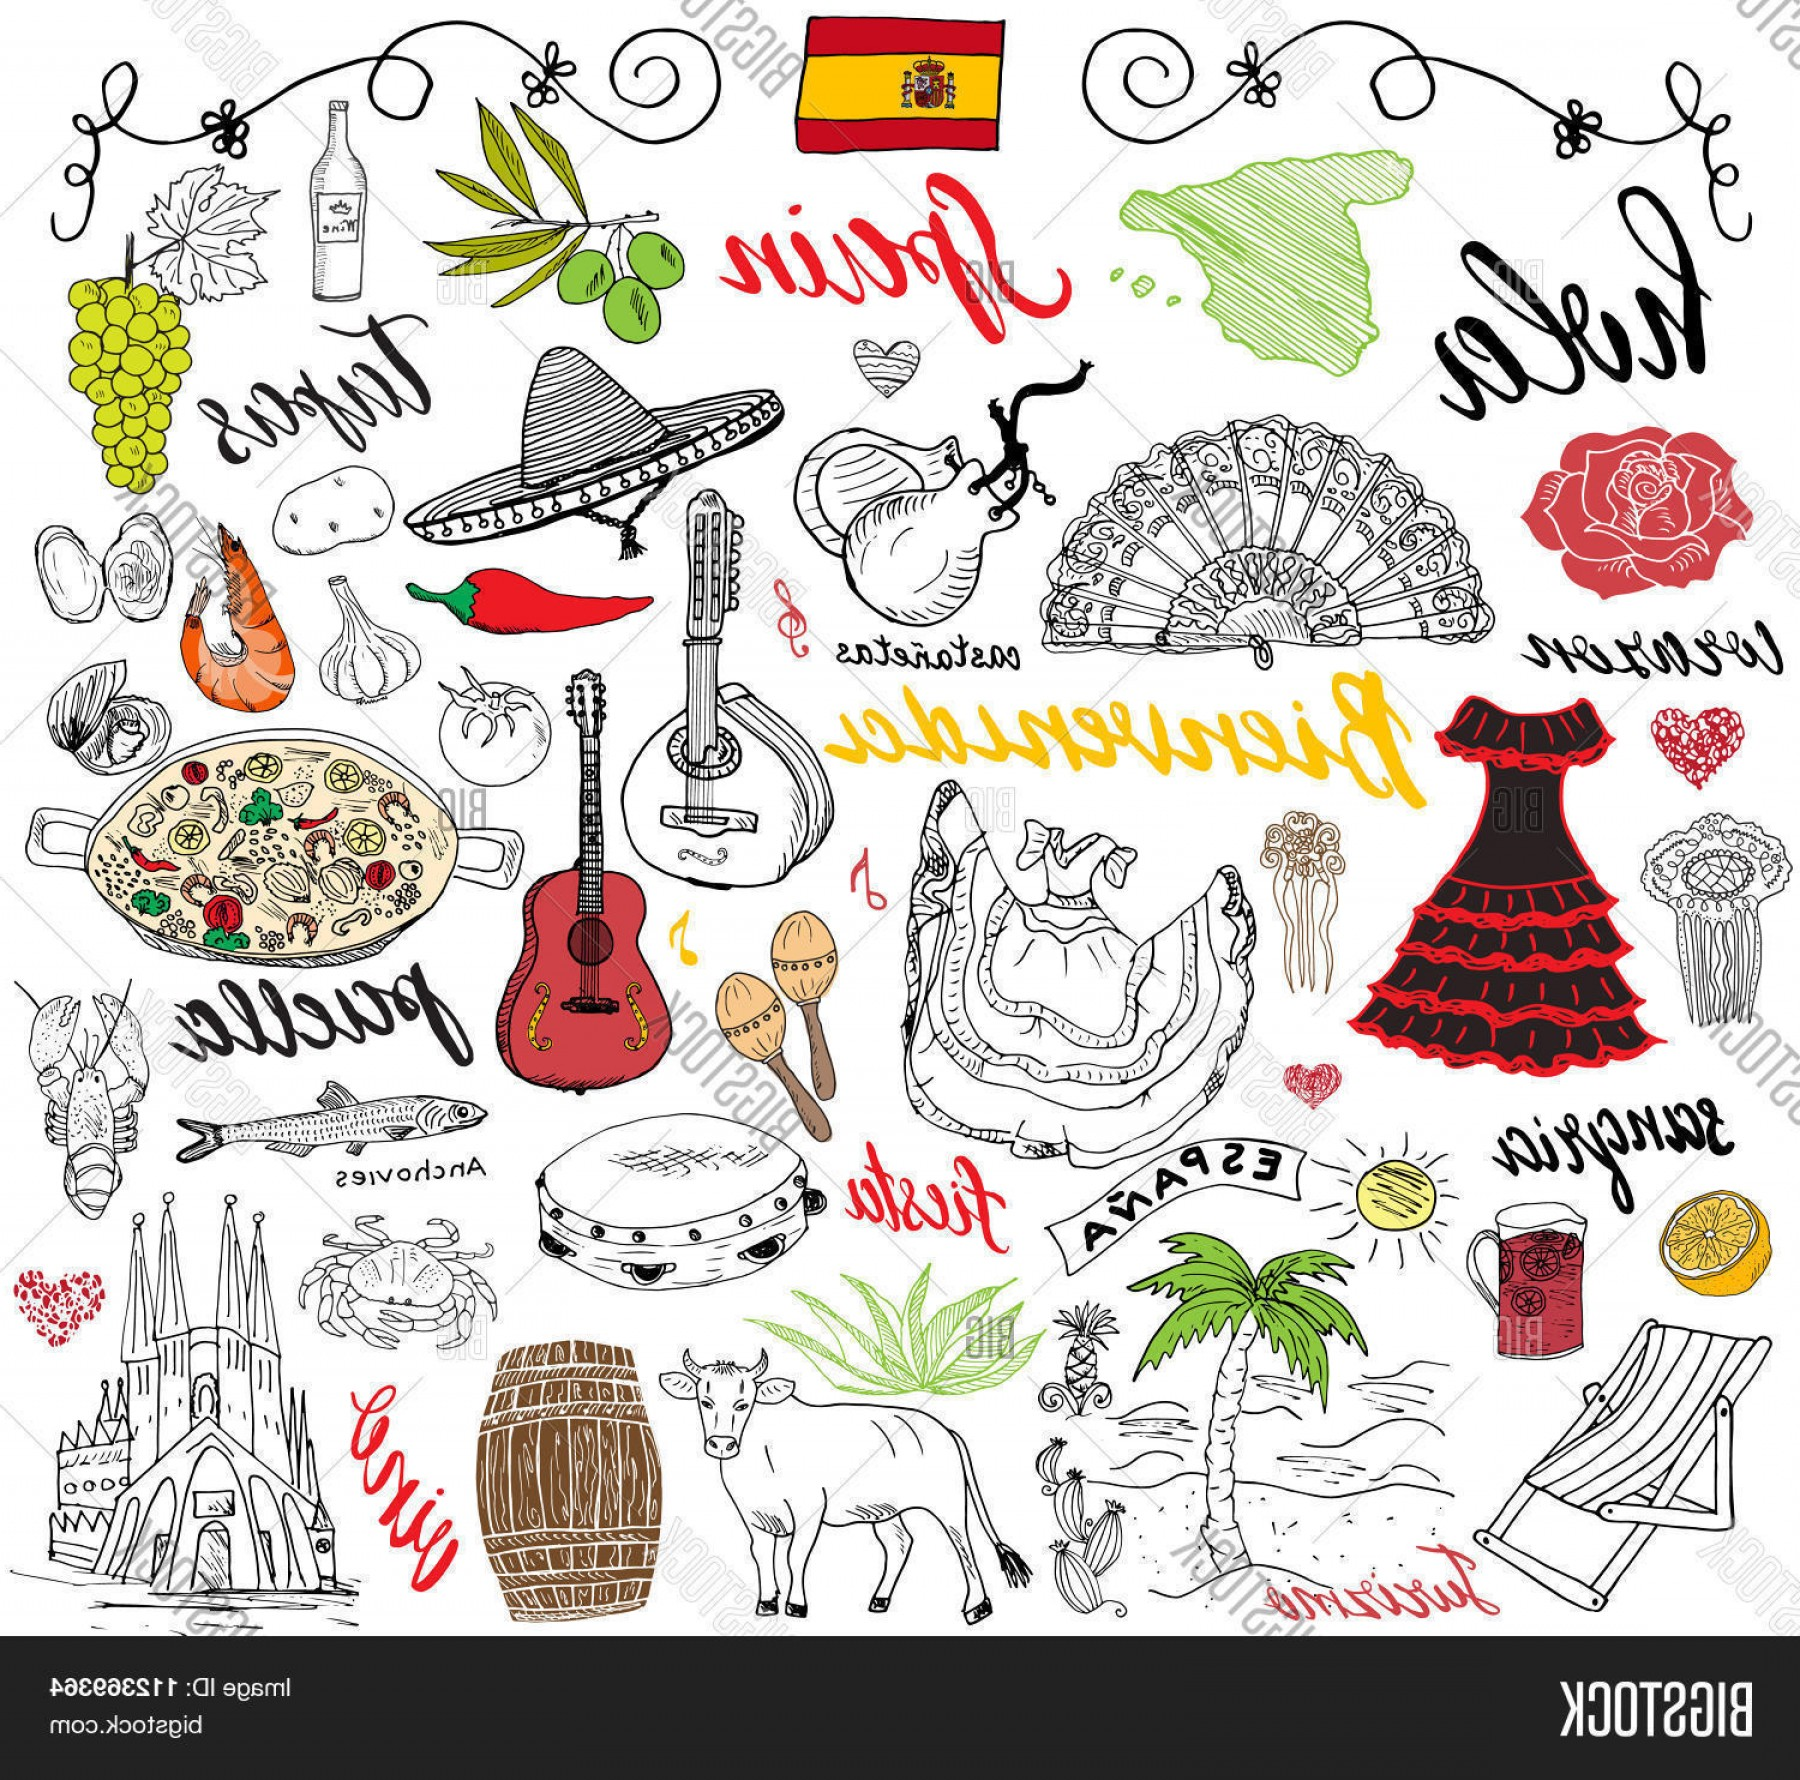 Spanish Vector Art: Stock Vector Spain Doodles Elements Hand Drawn Set With Spanish Food Paellac Shrimpsc Olivesc Grapec Fanc Wine B